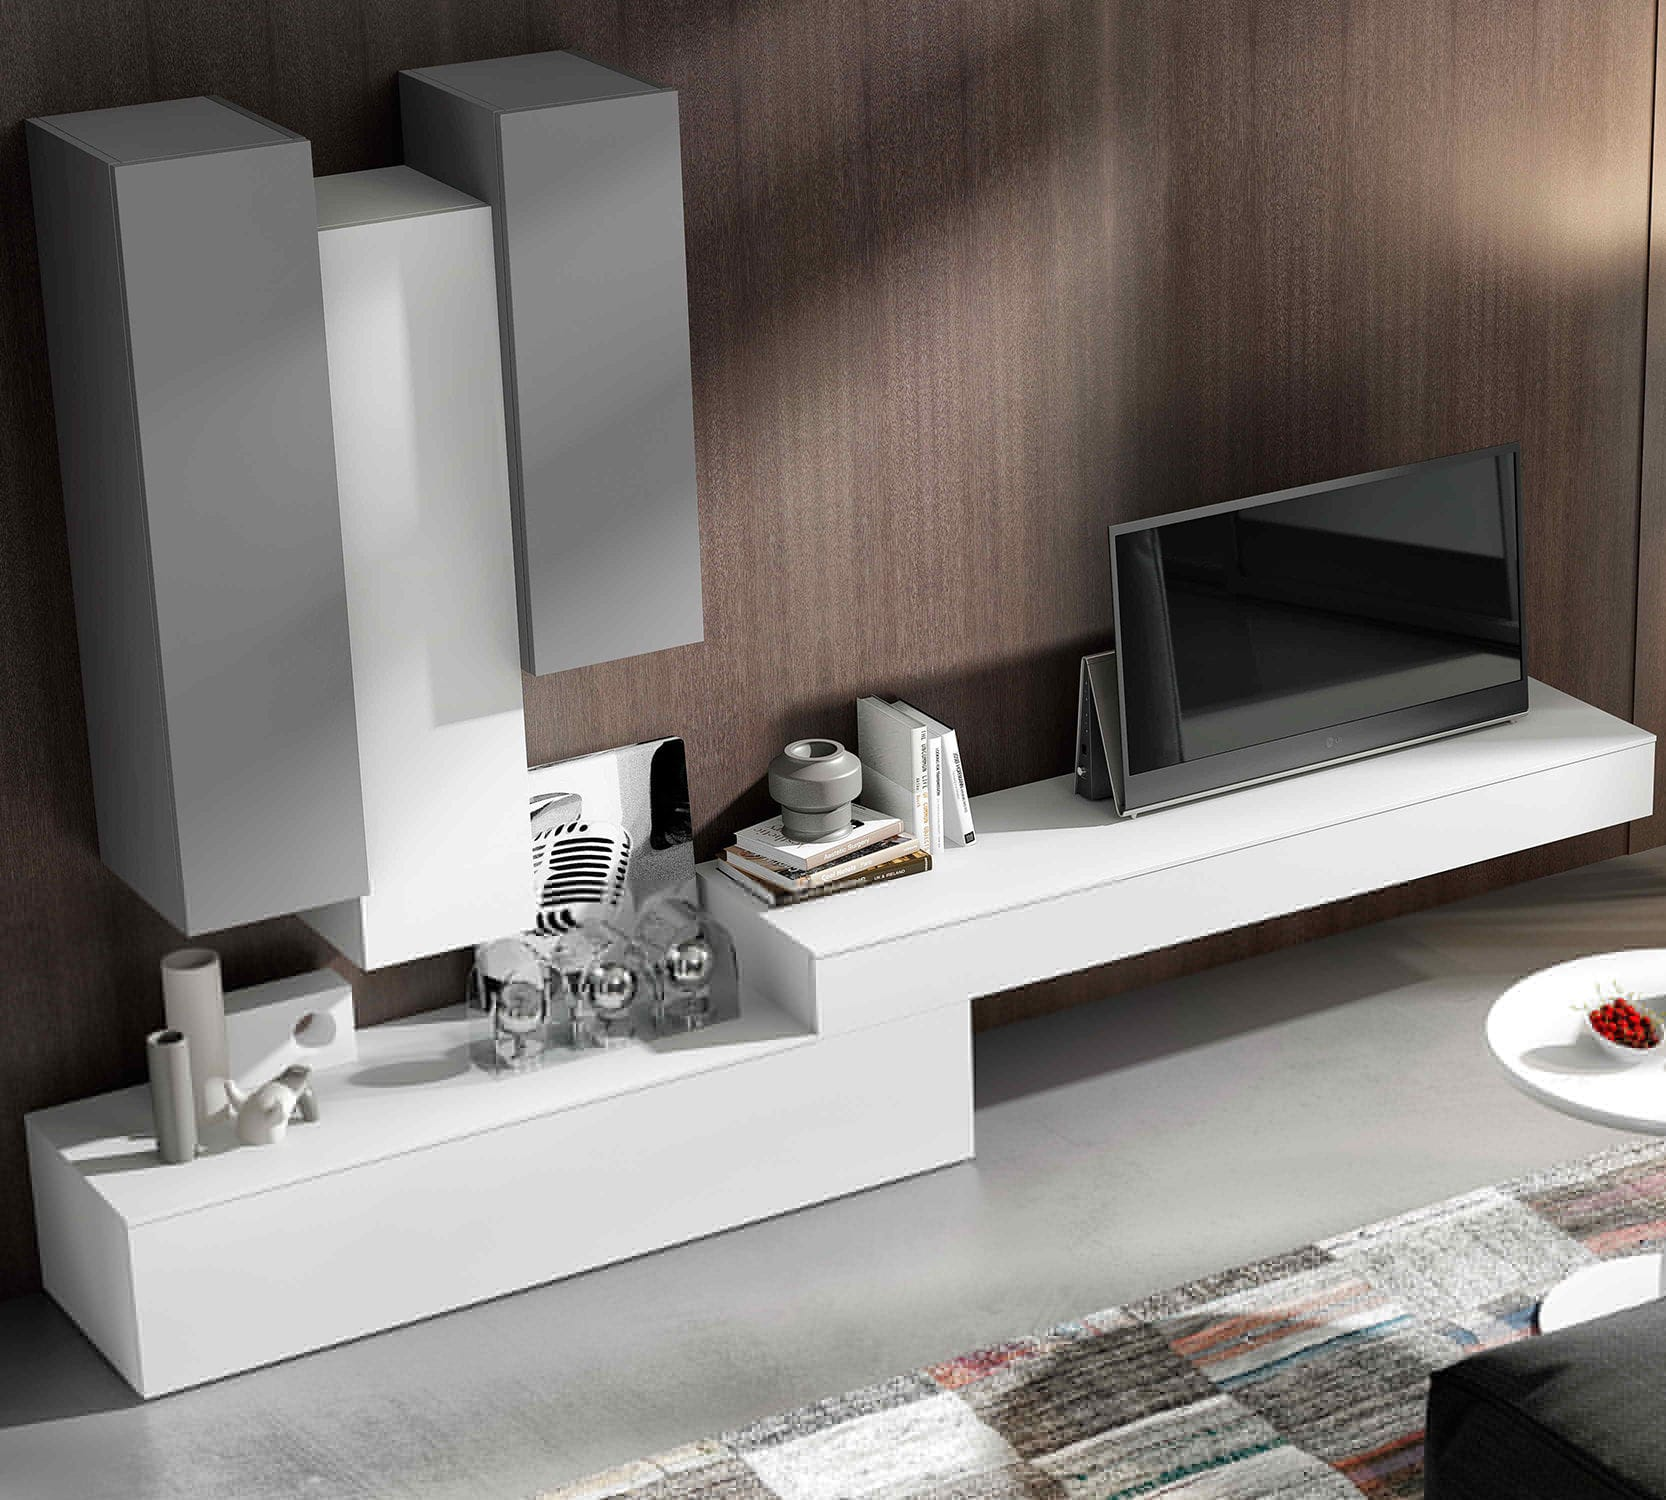 Contemporary Tv Wall Unit Lacquered Wood Impersonal2k15 8  # Muebles Piferrer Iline